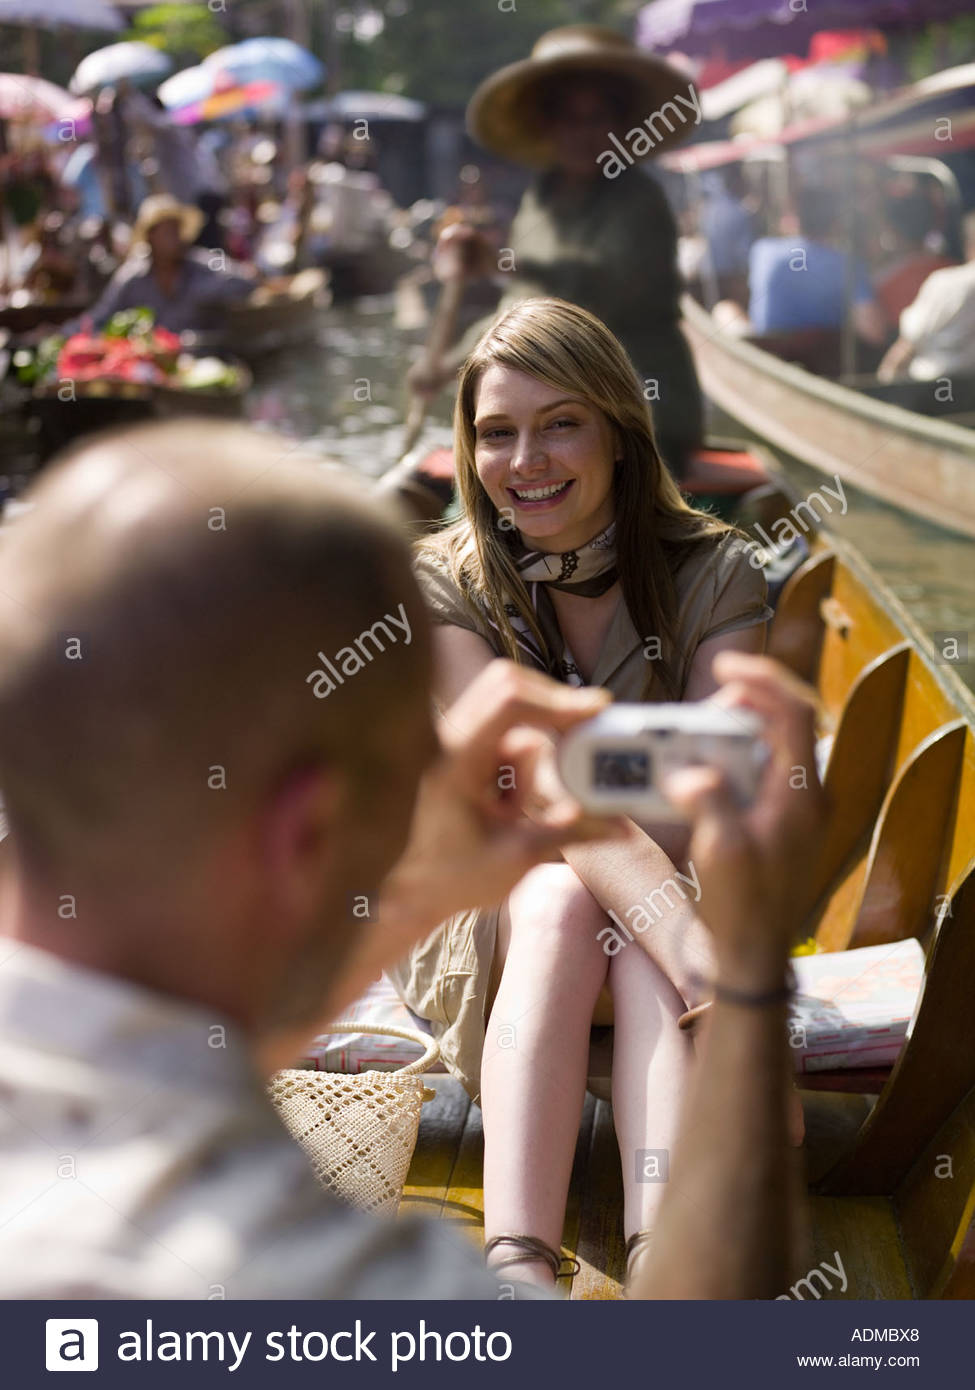 Man taking picture of girlfriend in row boat - Stock Image